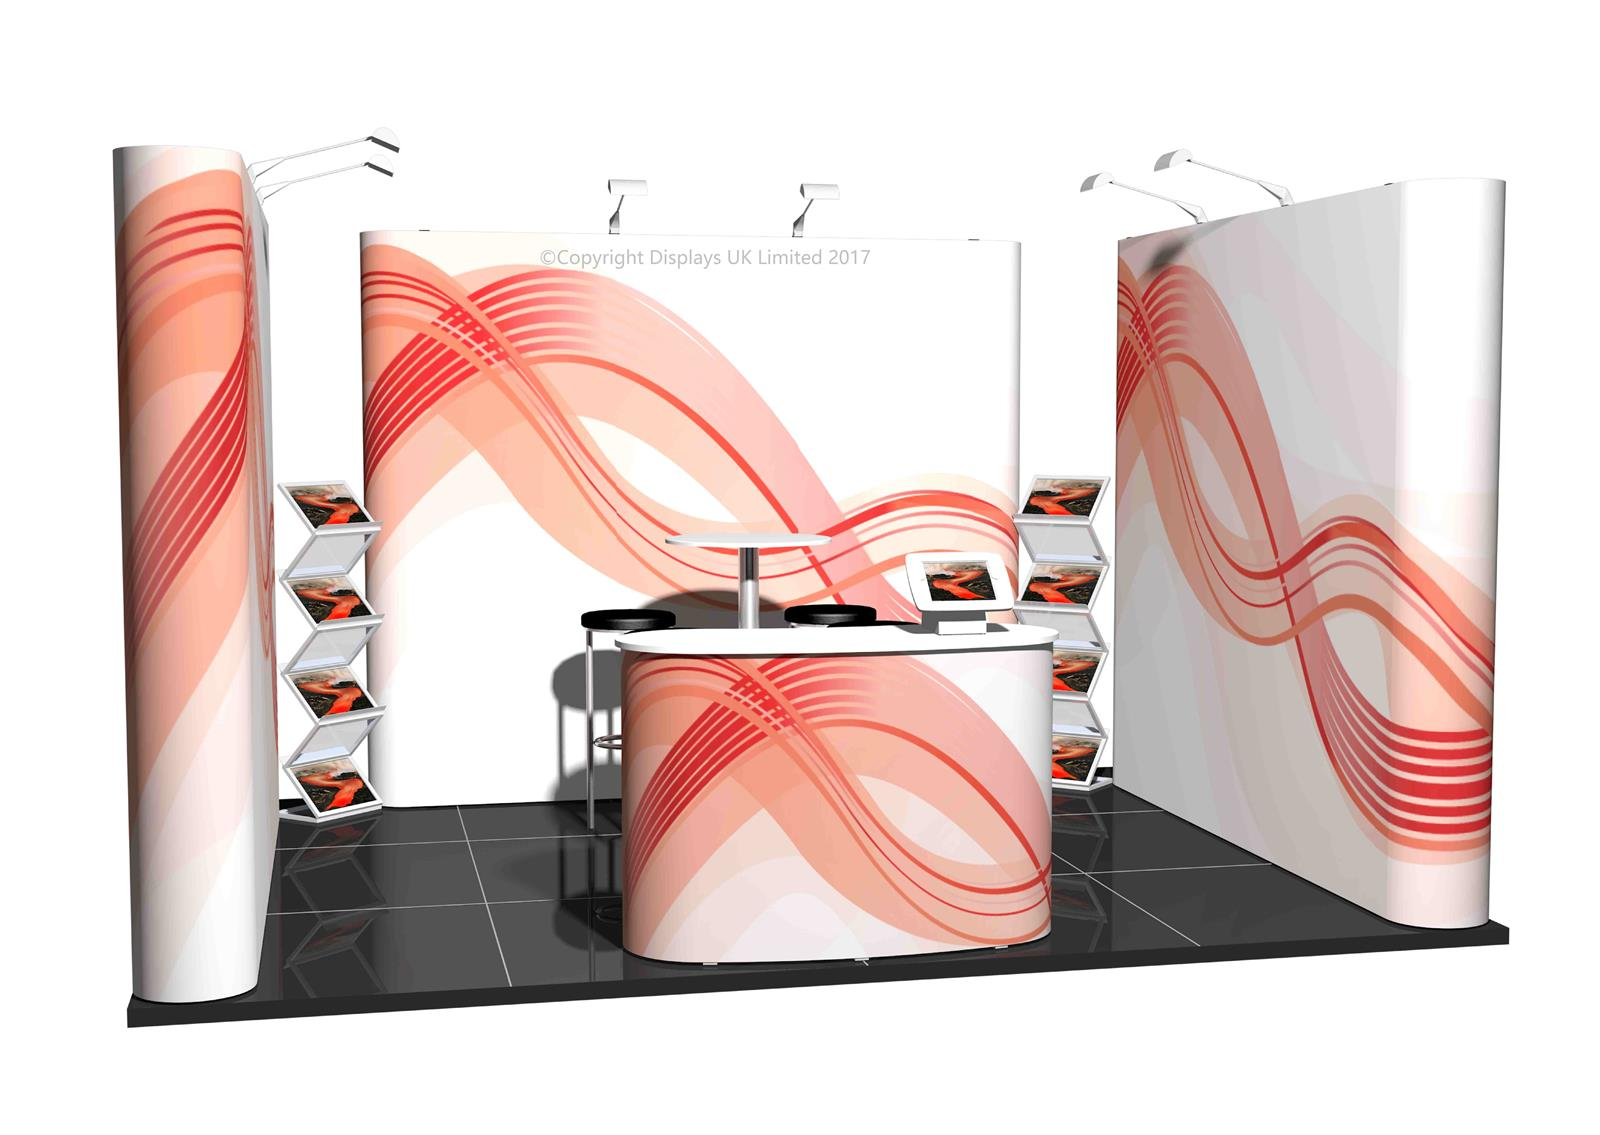 3m x 4m Linked Pop Up Exhibition Stand - Kit 19 - P4x3-1aS